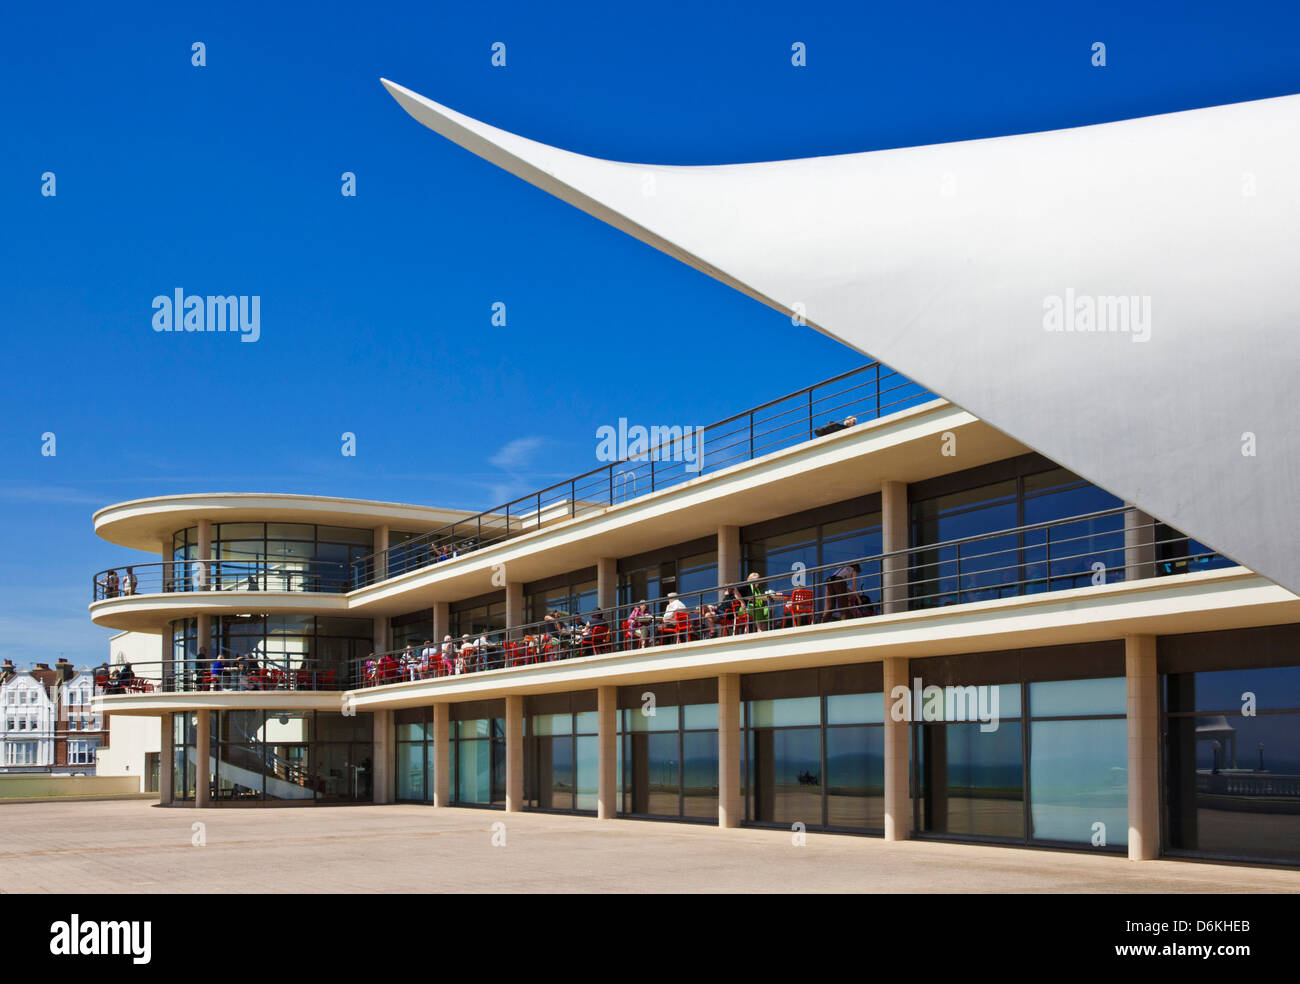 Outdoor stage at De La Warr Pavilion, Bexhill on Sea, East Sussex, England, UK, GB, EU, Europe Stock Photo